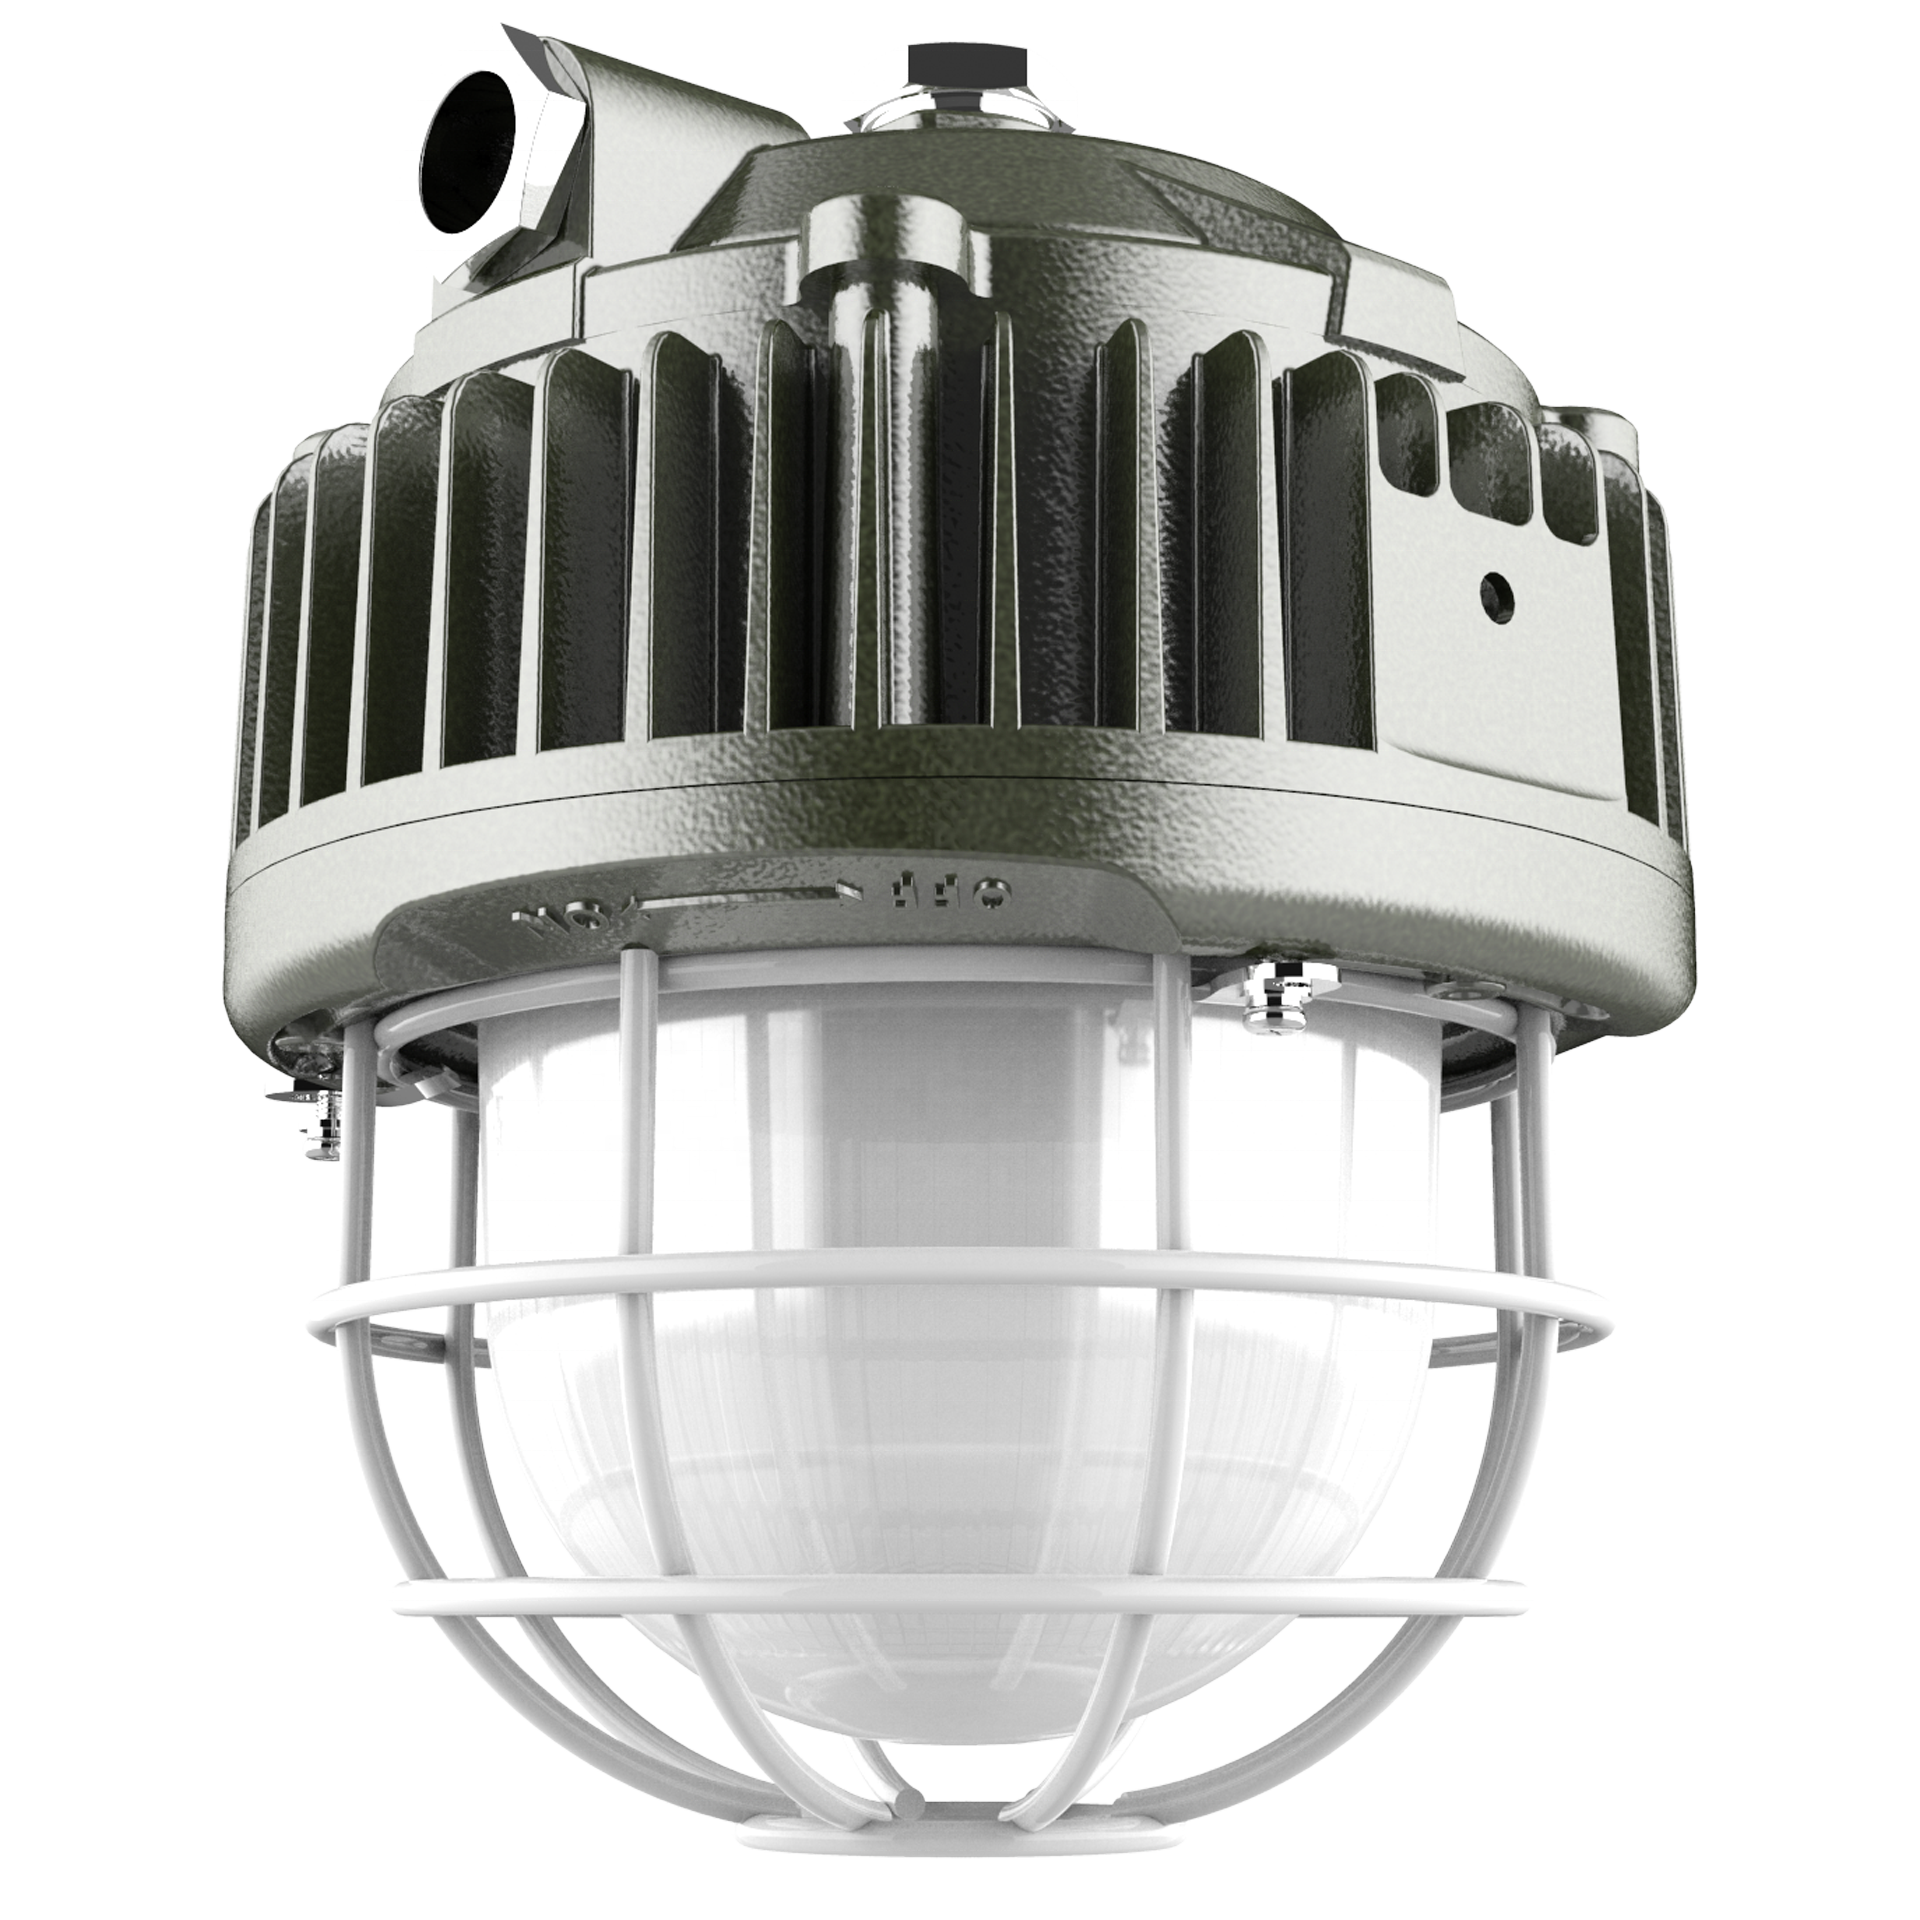 Vividatex-lampe led antiexplosion, version globale, 10/20/30/40w, IP66, éclairage de prix